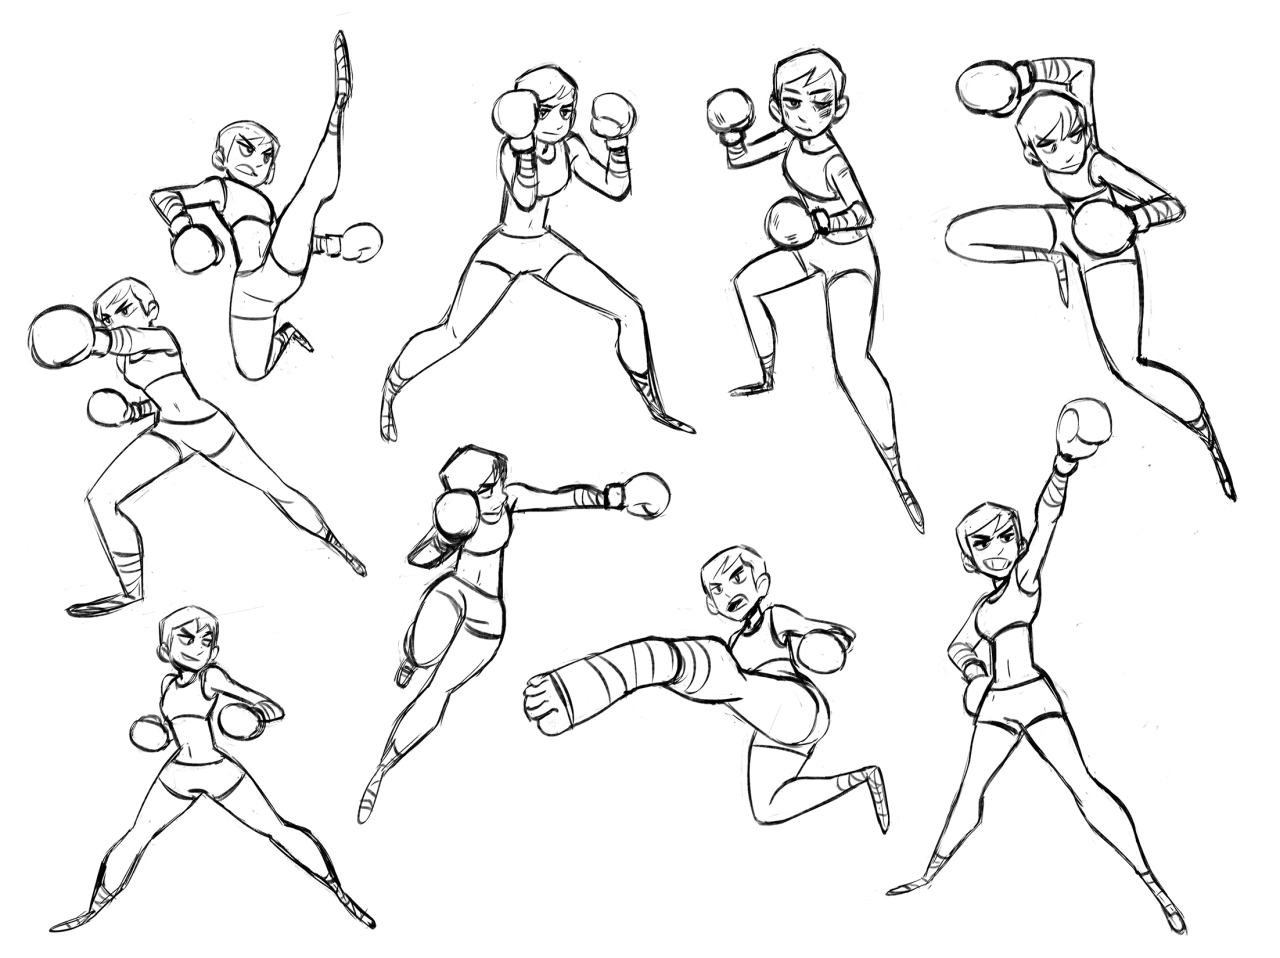 Rotation And Poses For My Kickboxer Character That I Animated Fighting Poses Character Poses Sketch Poses